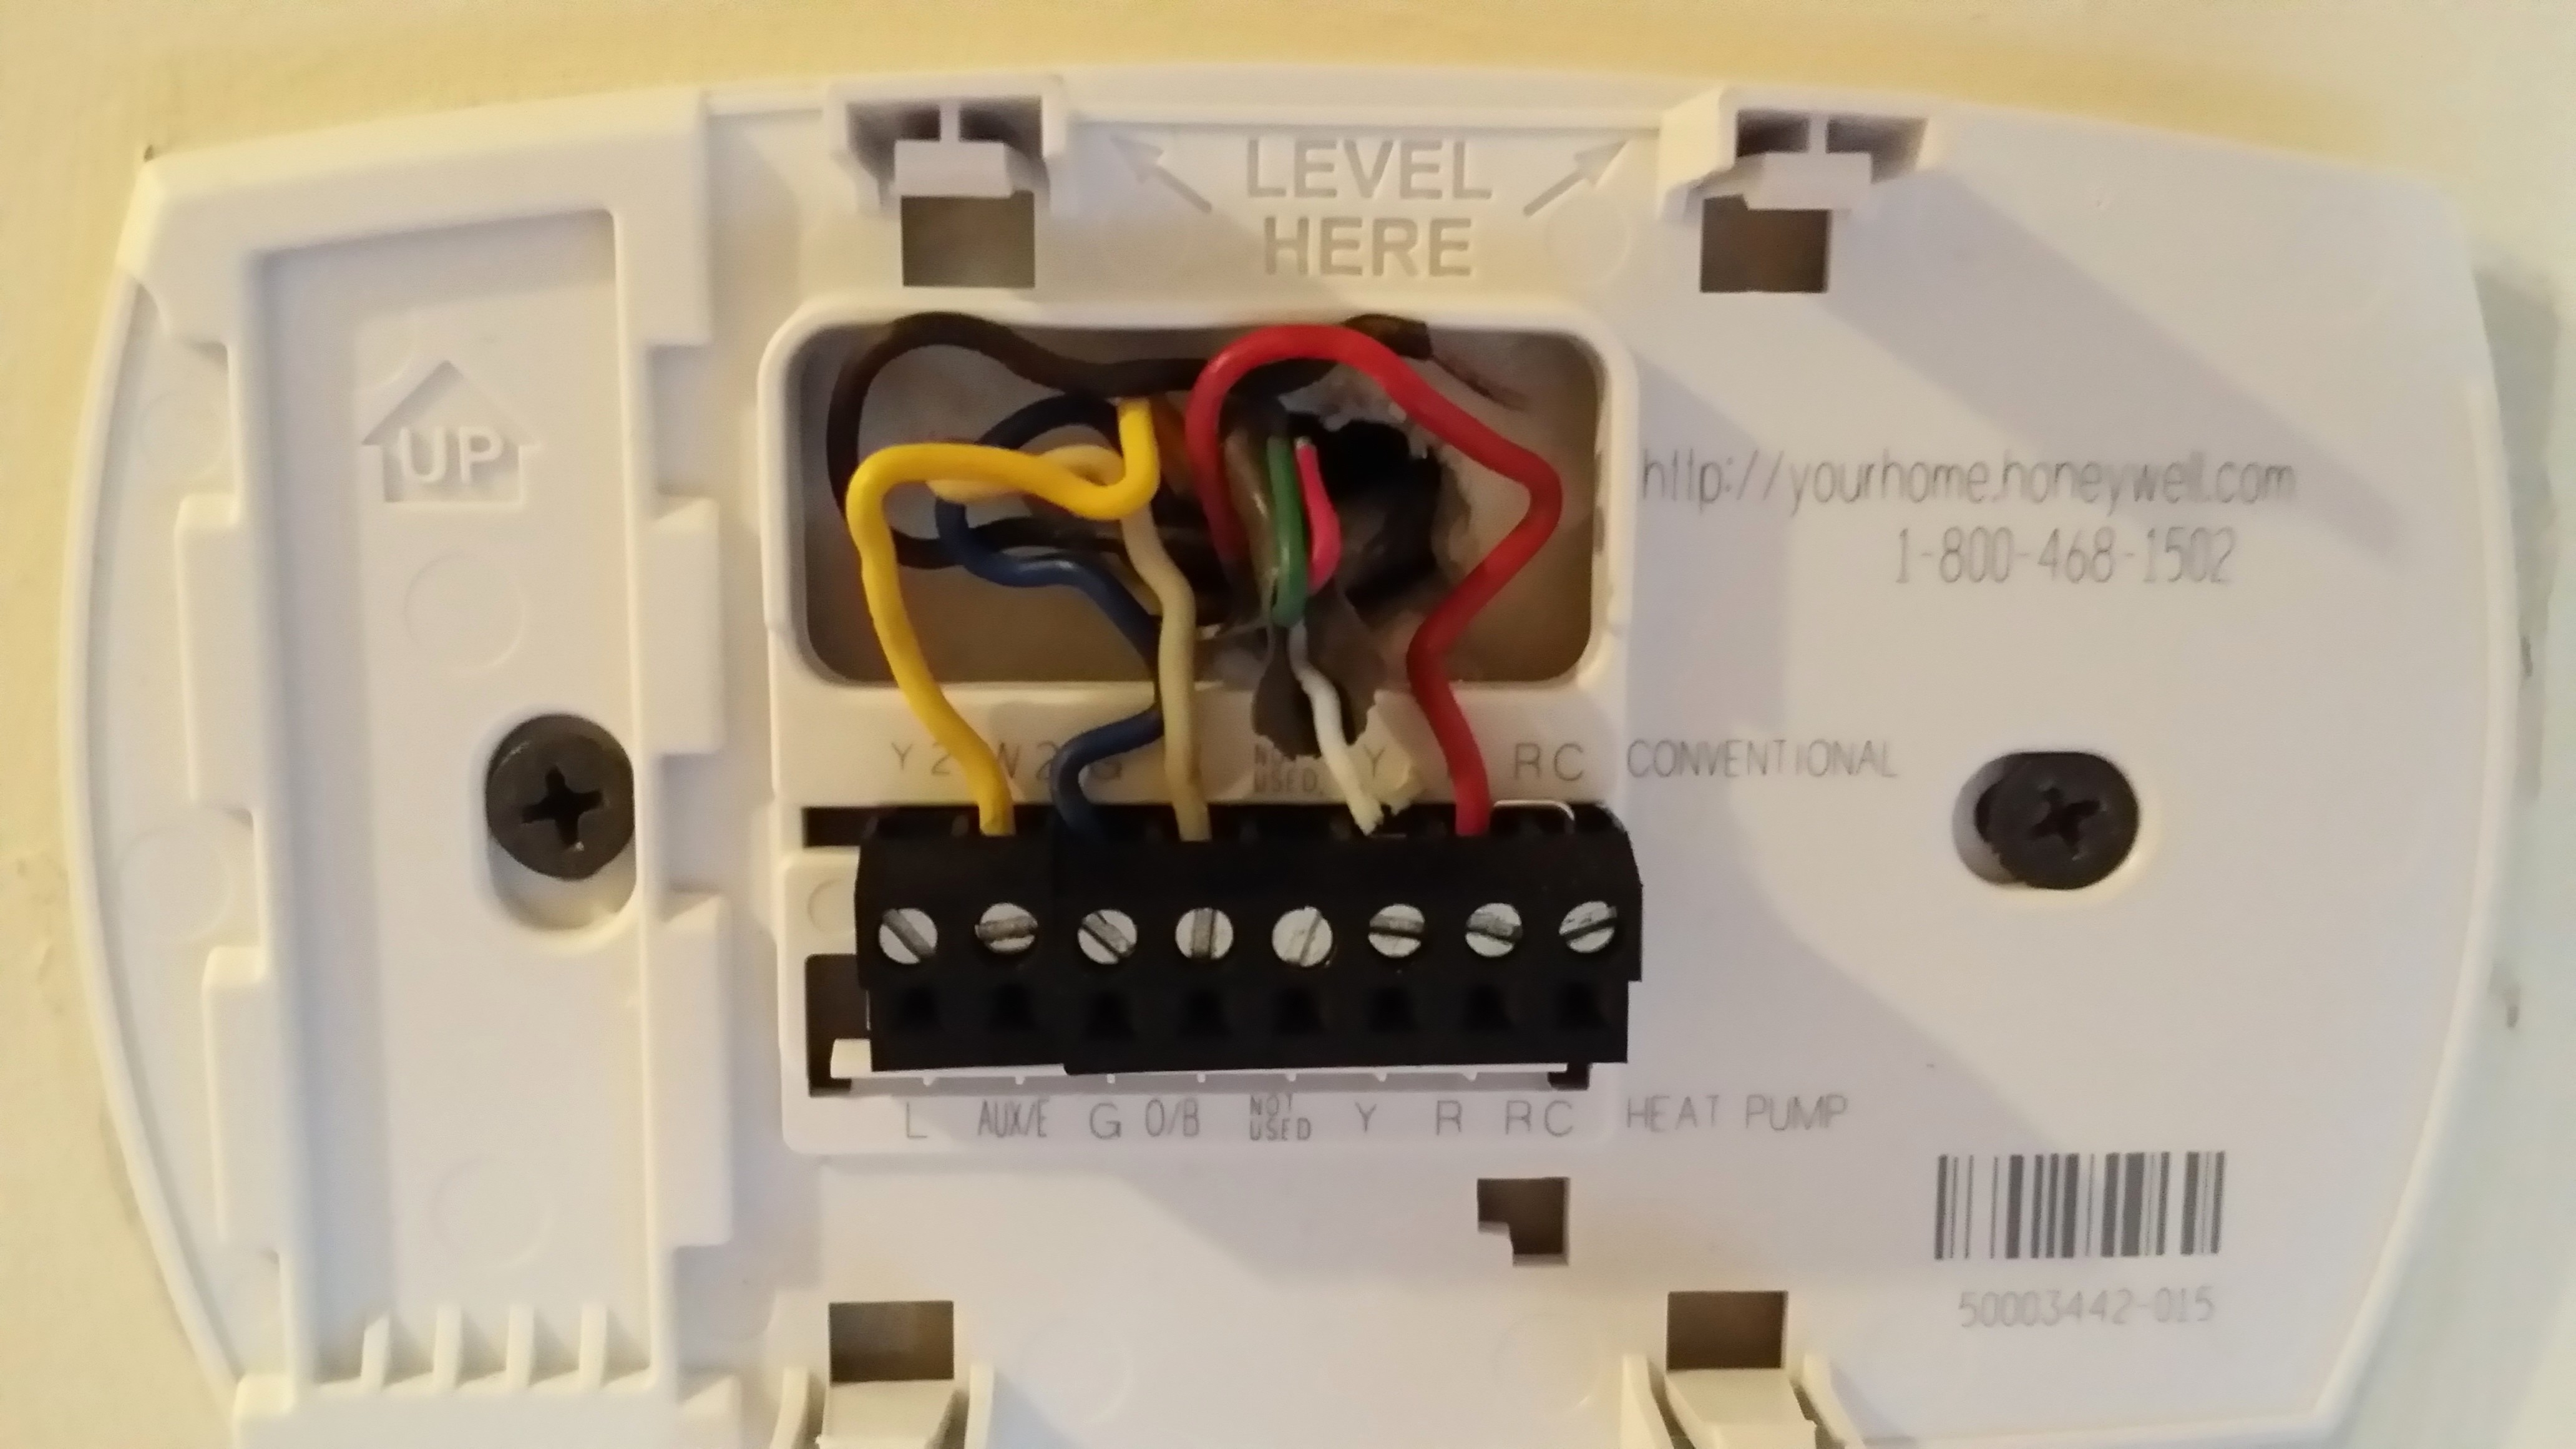 Wiring Honeywell Thermostat Pro 4000 Wiring Circuit Diagrams